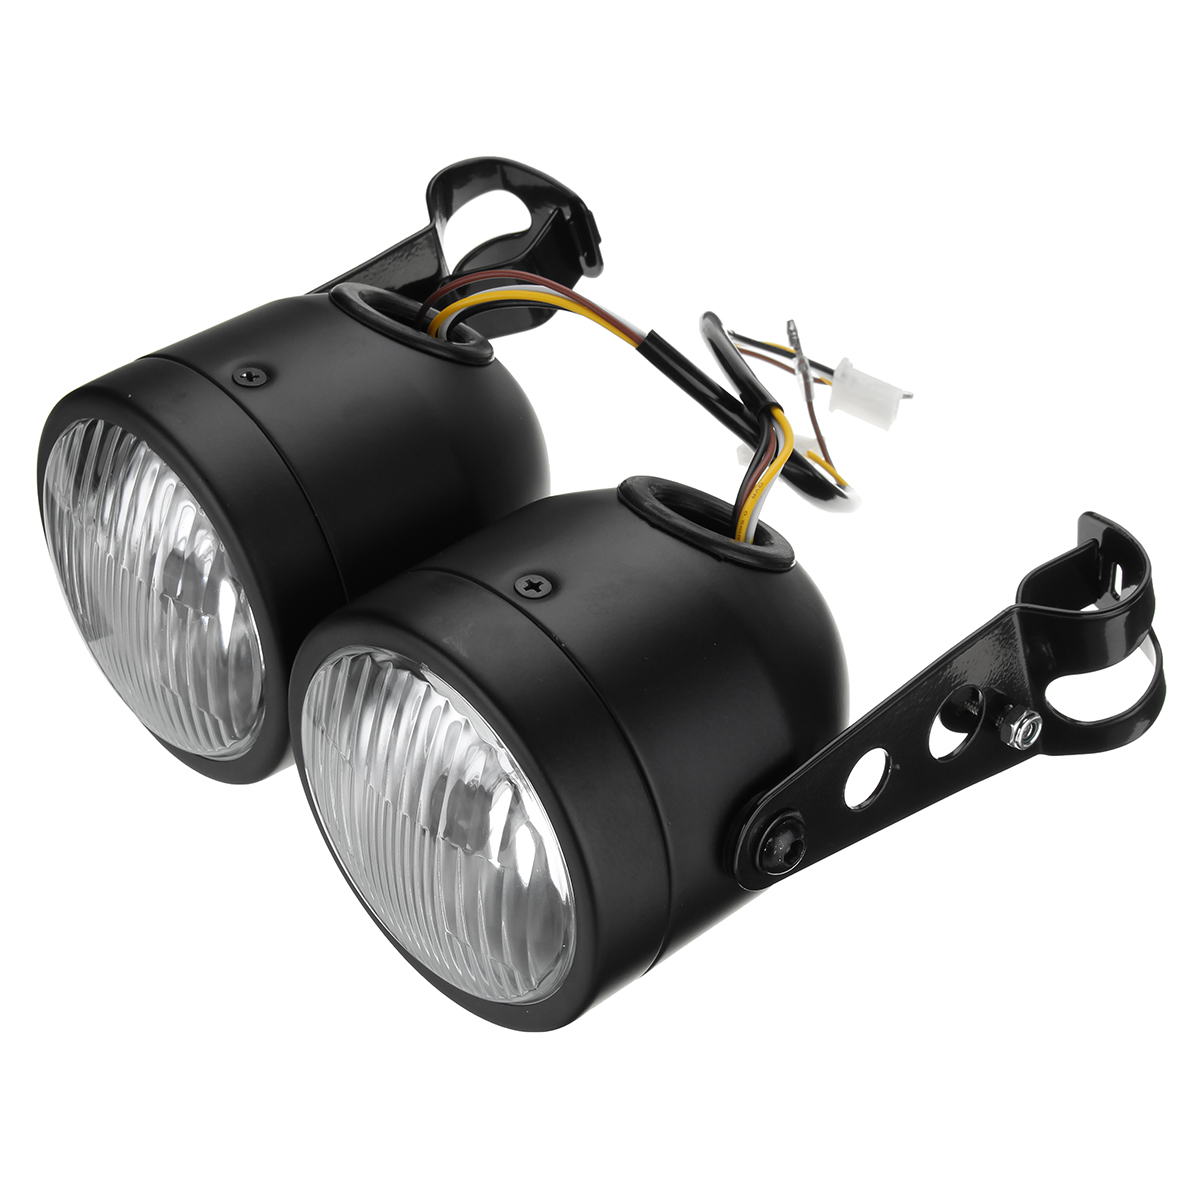 12V H4 35W Dual Twin Motorcycle Headlight Dominator Tracker Streetfighter Headlamp+Bracket